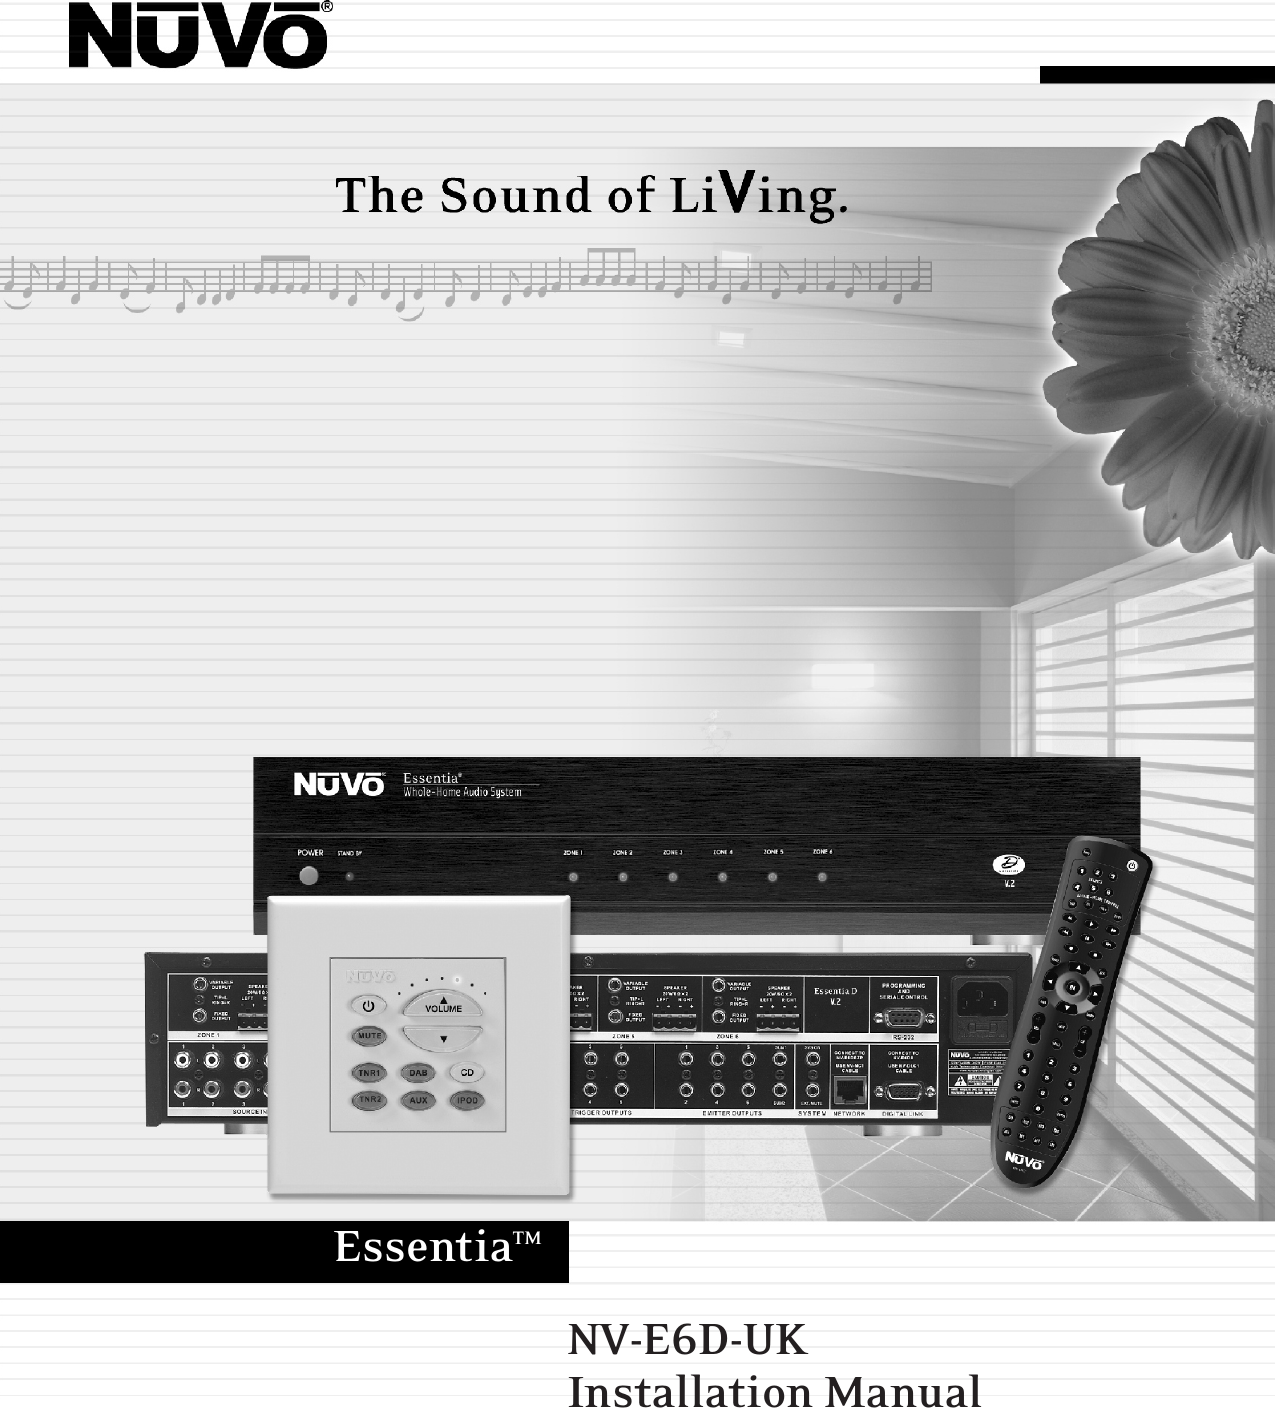 Nuvo Home Theater System Nv E6D Uk Users Manual Installation ... Nuvo Essentia Wiring Diagram on